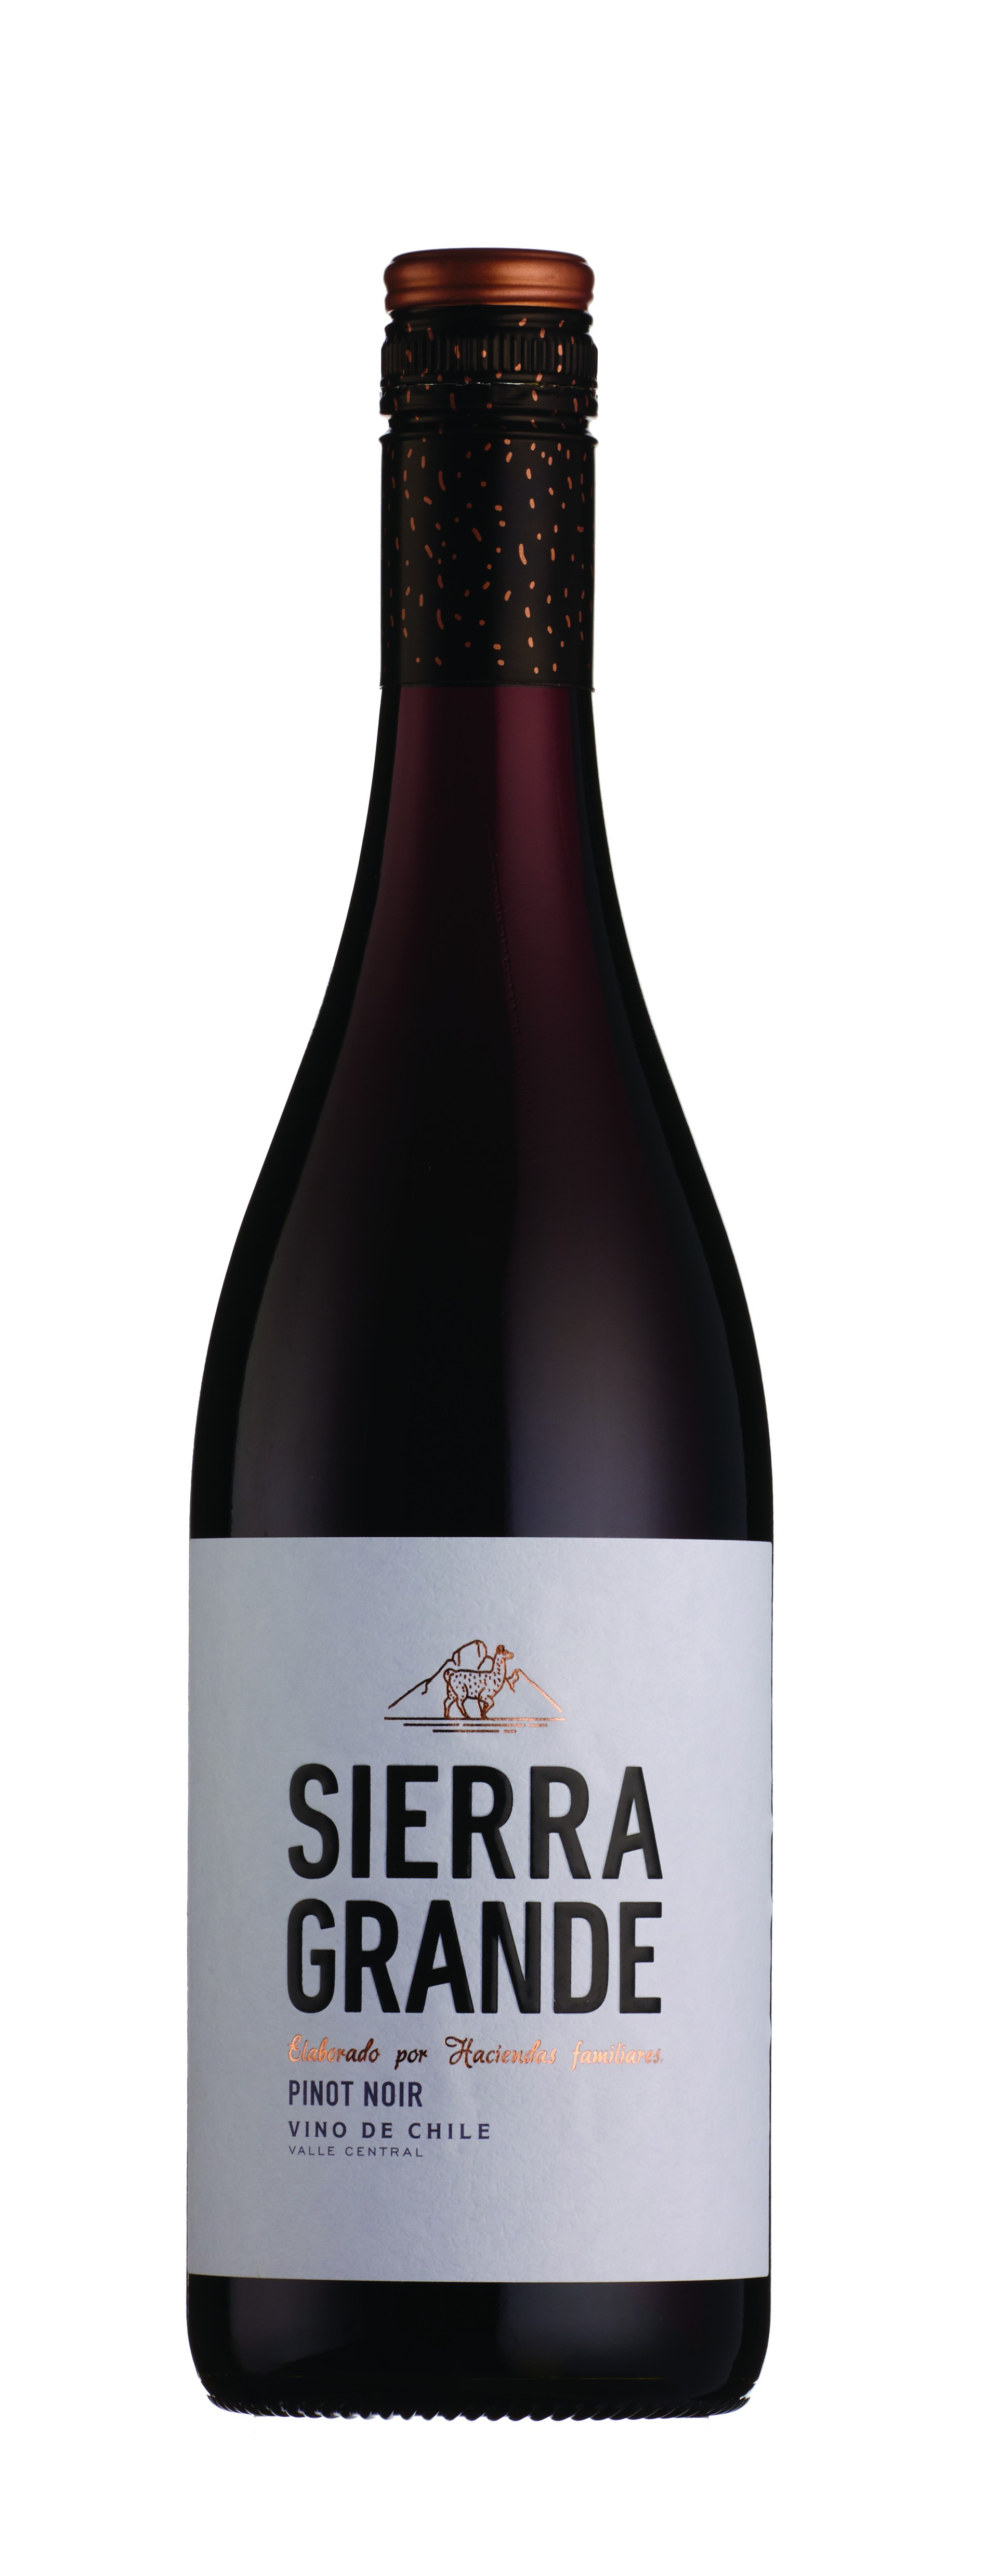 Buy Sierra Grande Pinot Noir 2017 at herculeswines.co.uk